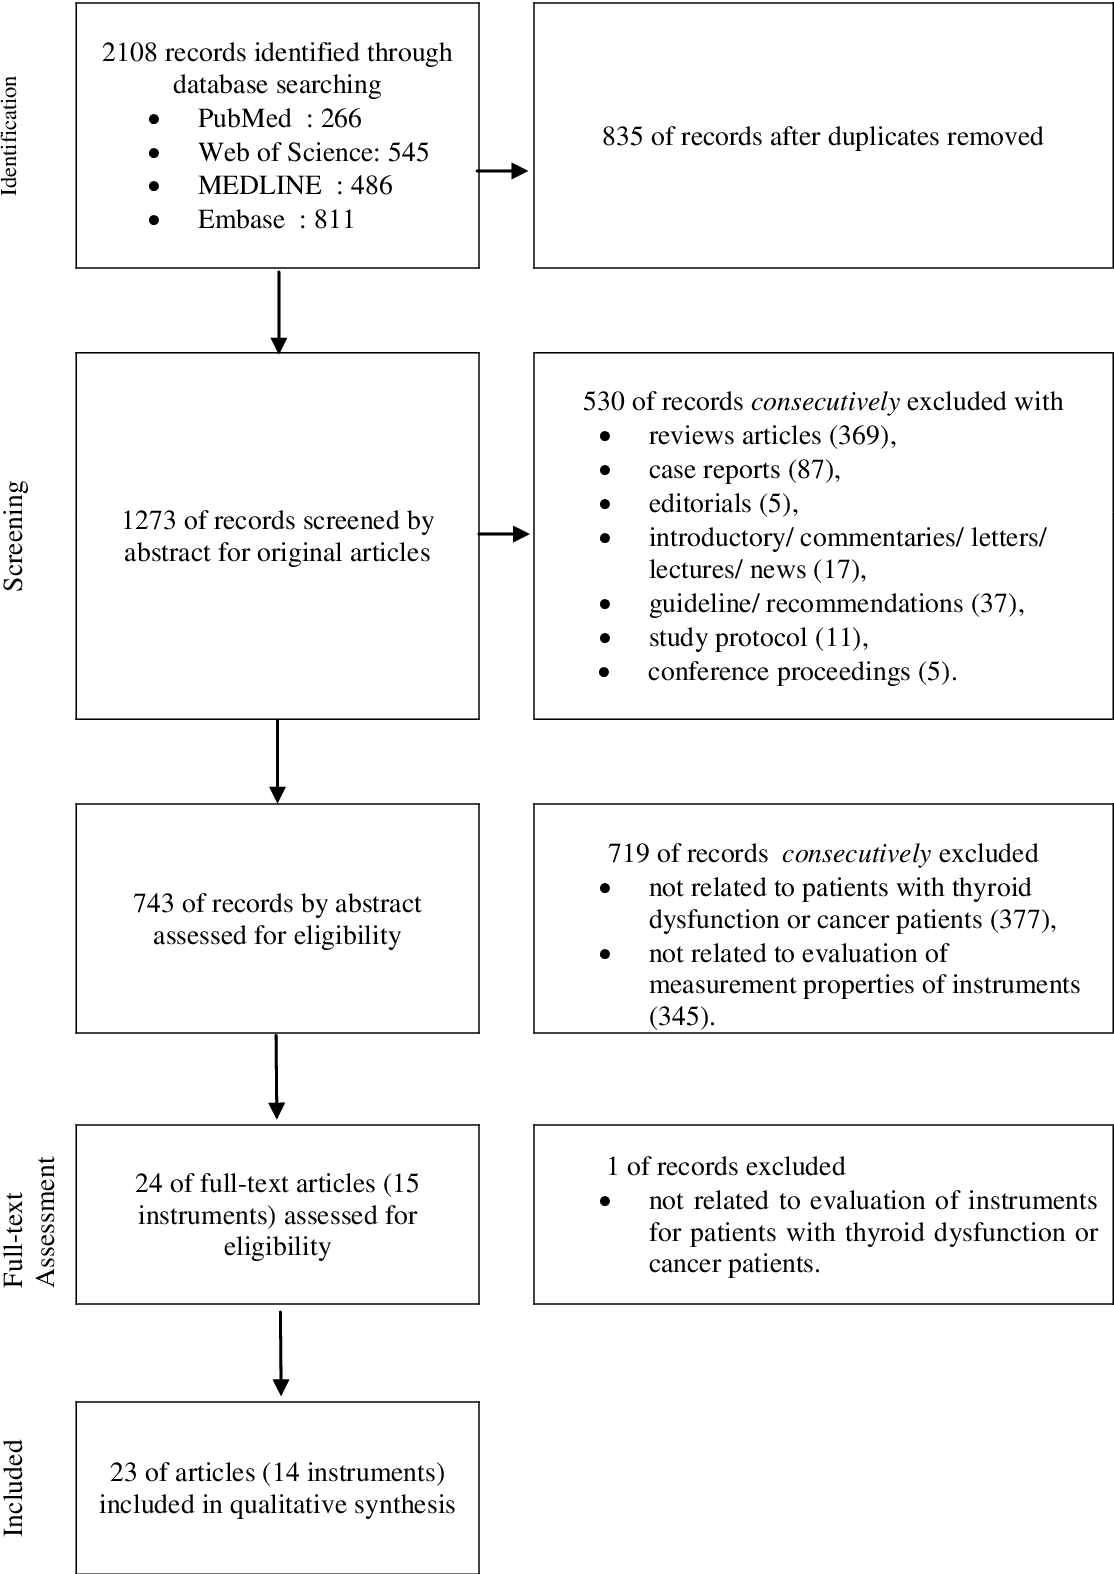 Pdf A Systematic Review Of Quality Of Thyroid Specific Health Related Quality Of Life Instruments Recommends Thypro For Patients With Benign Thyroid Diseases Semantic Scholar